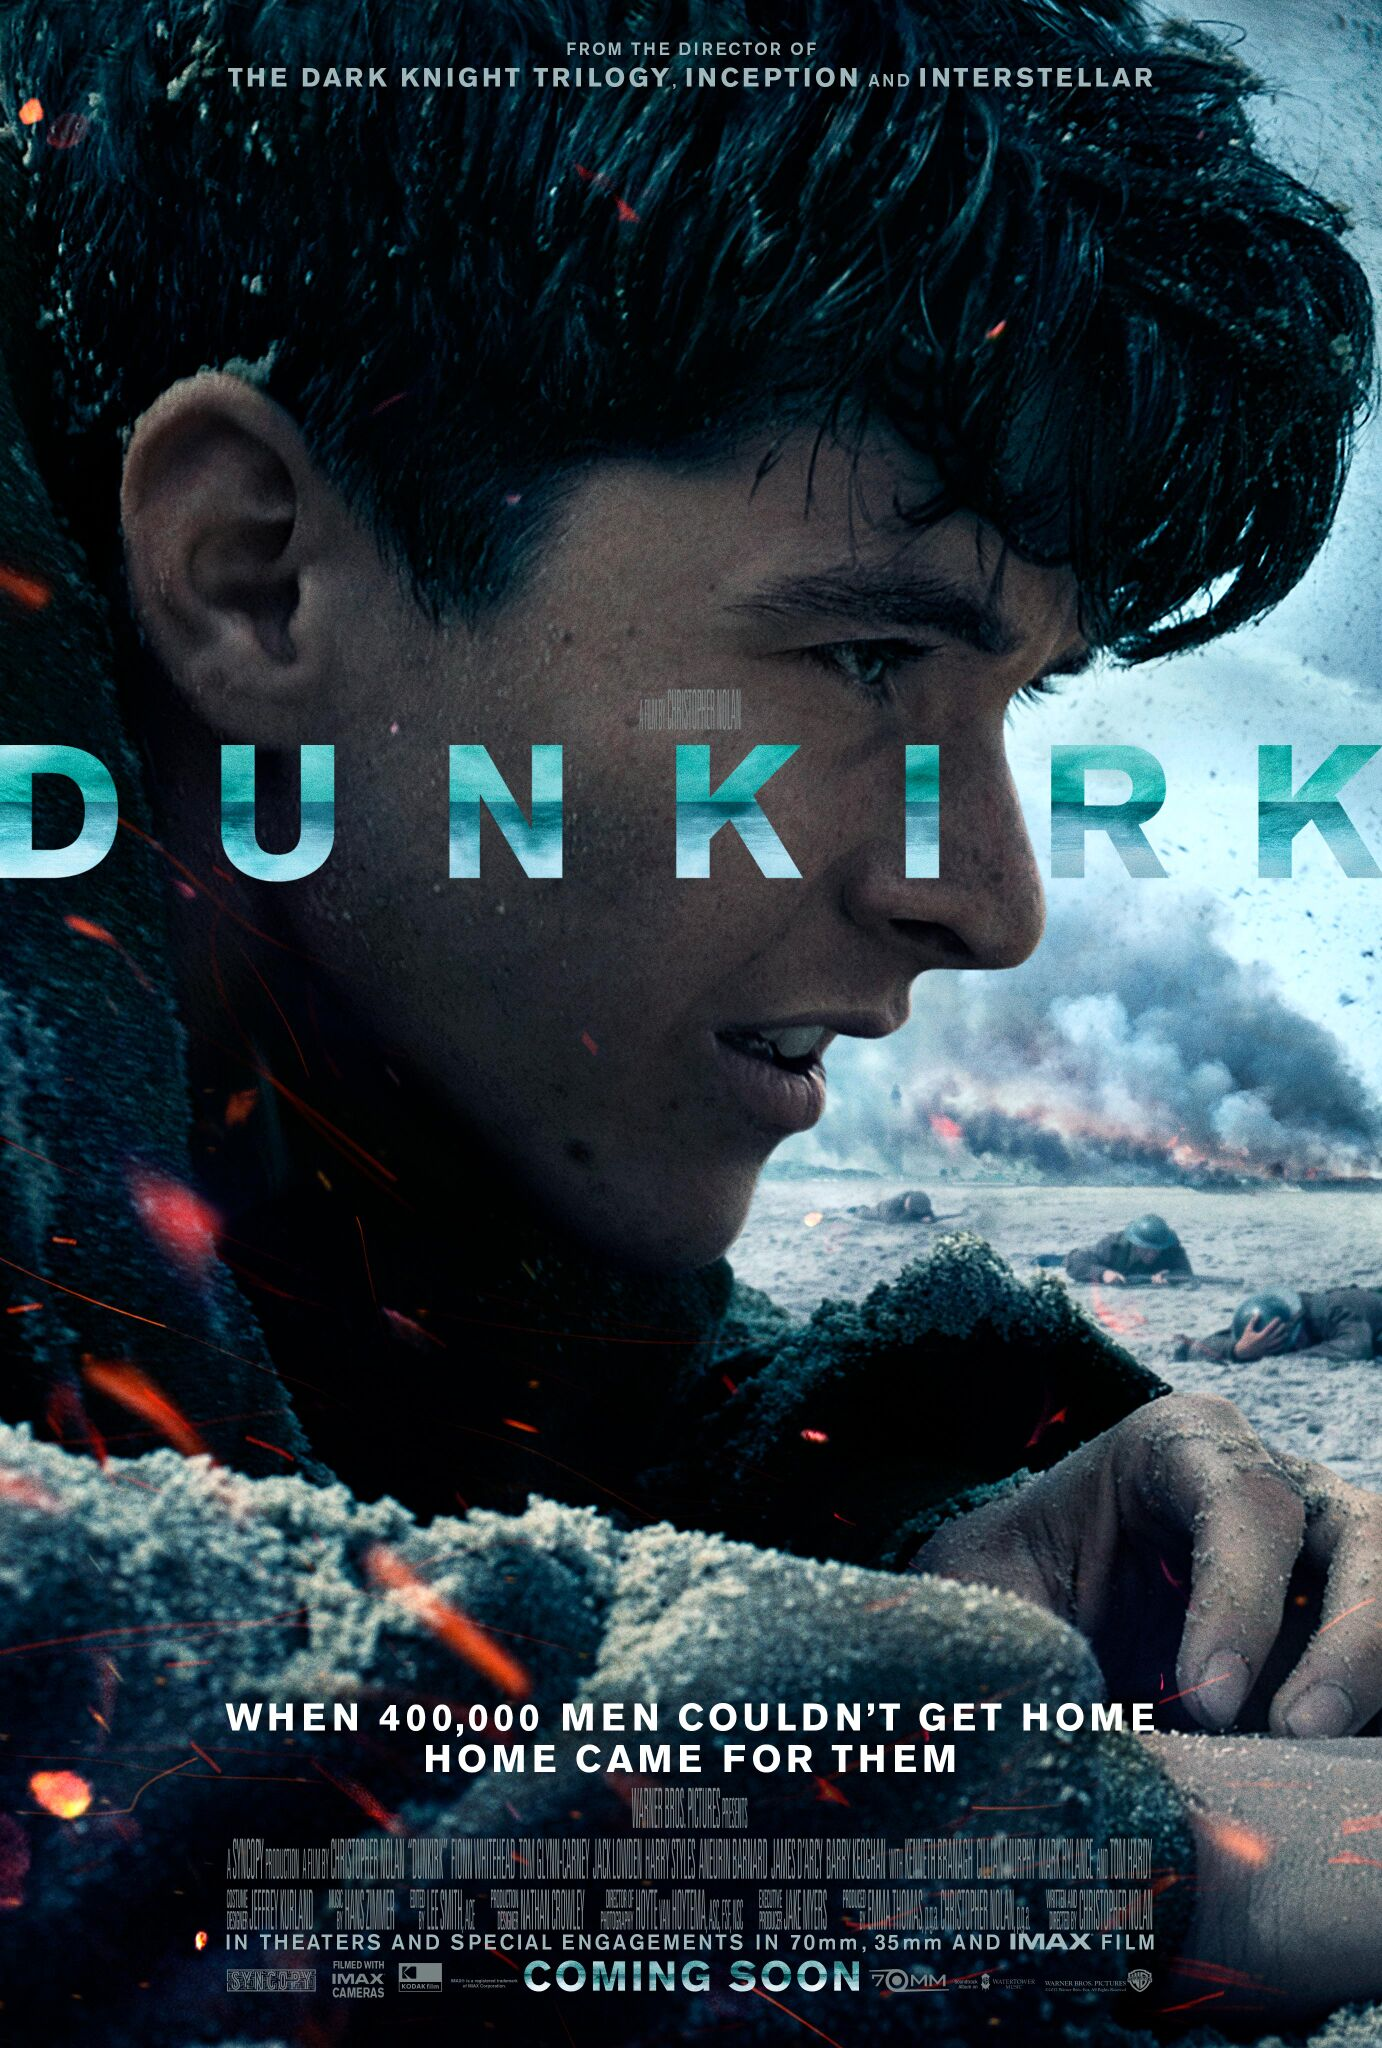 The Dunkirk World Premiere takes place this Thursday in London